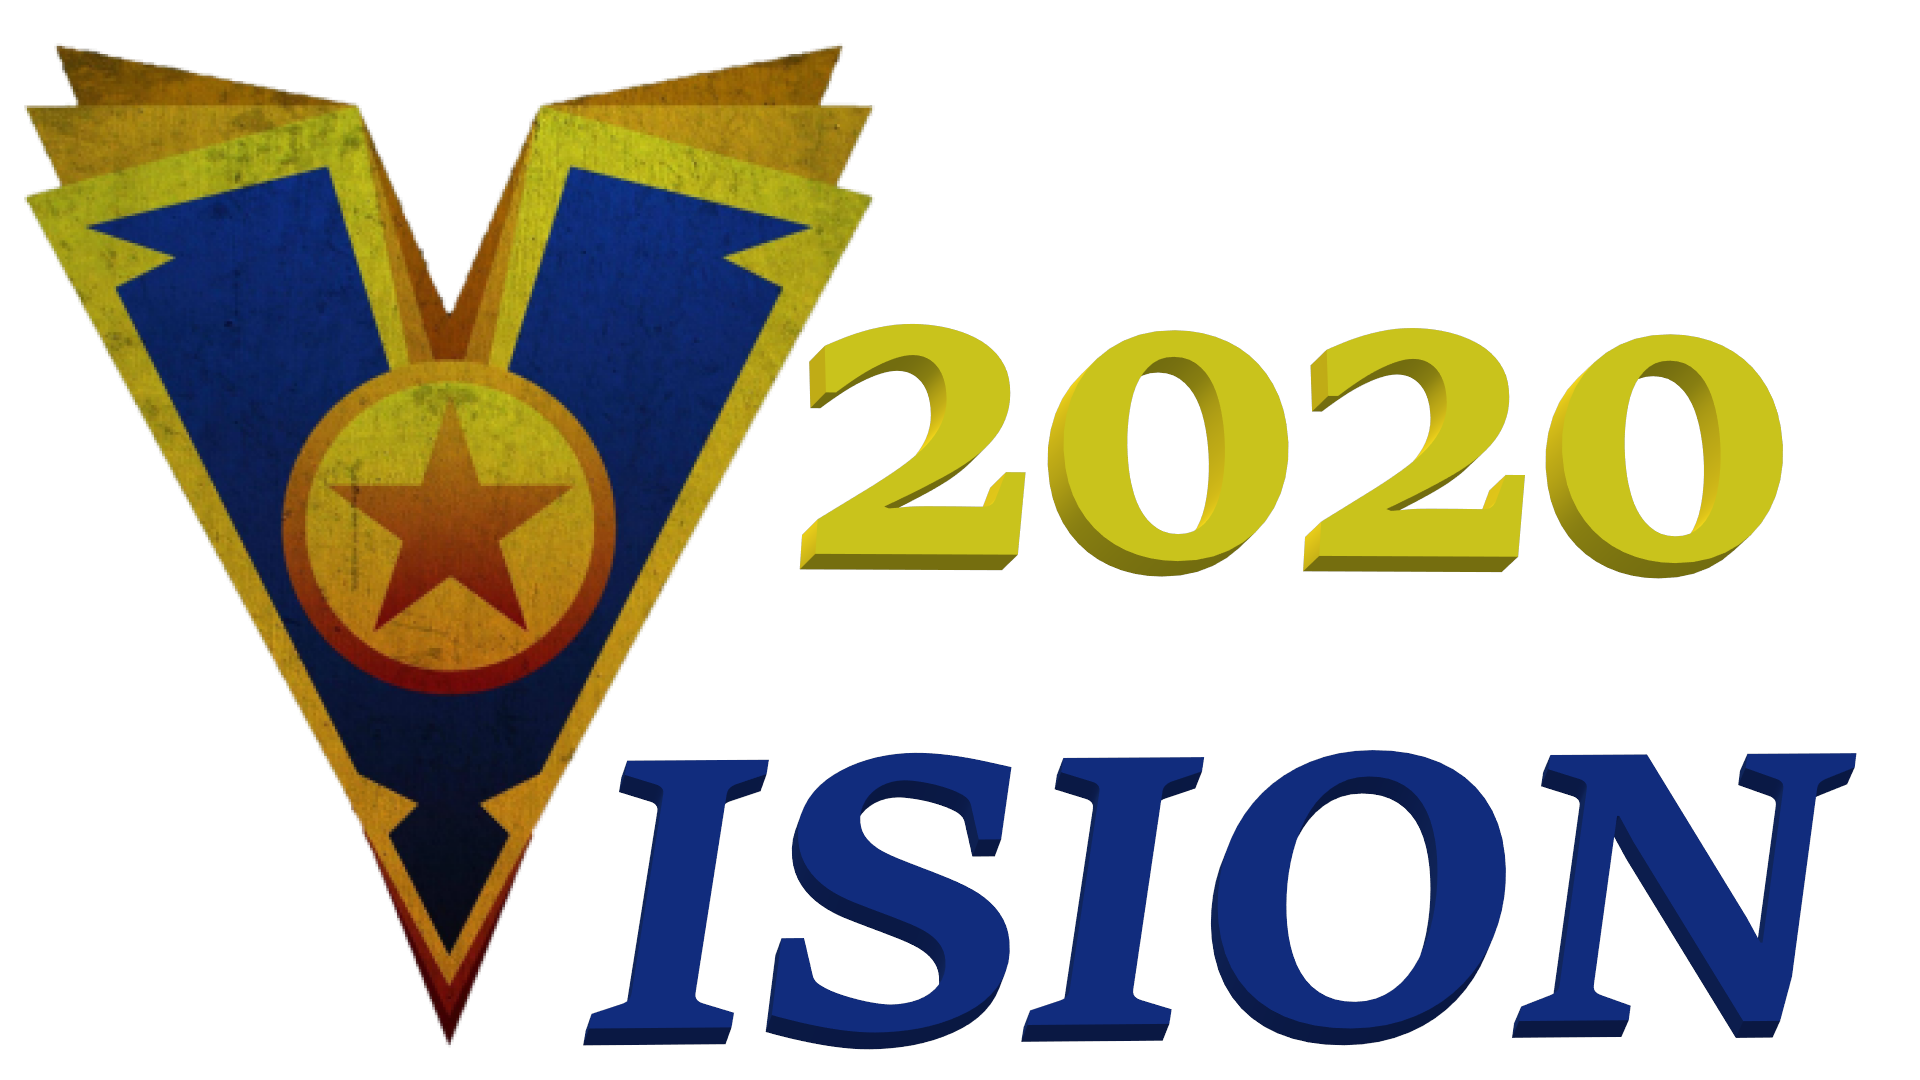 VCO_2020_Vision.png